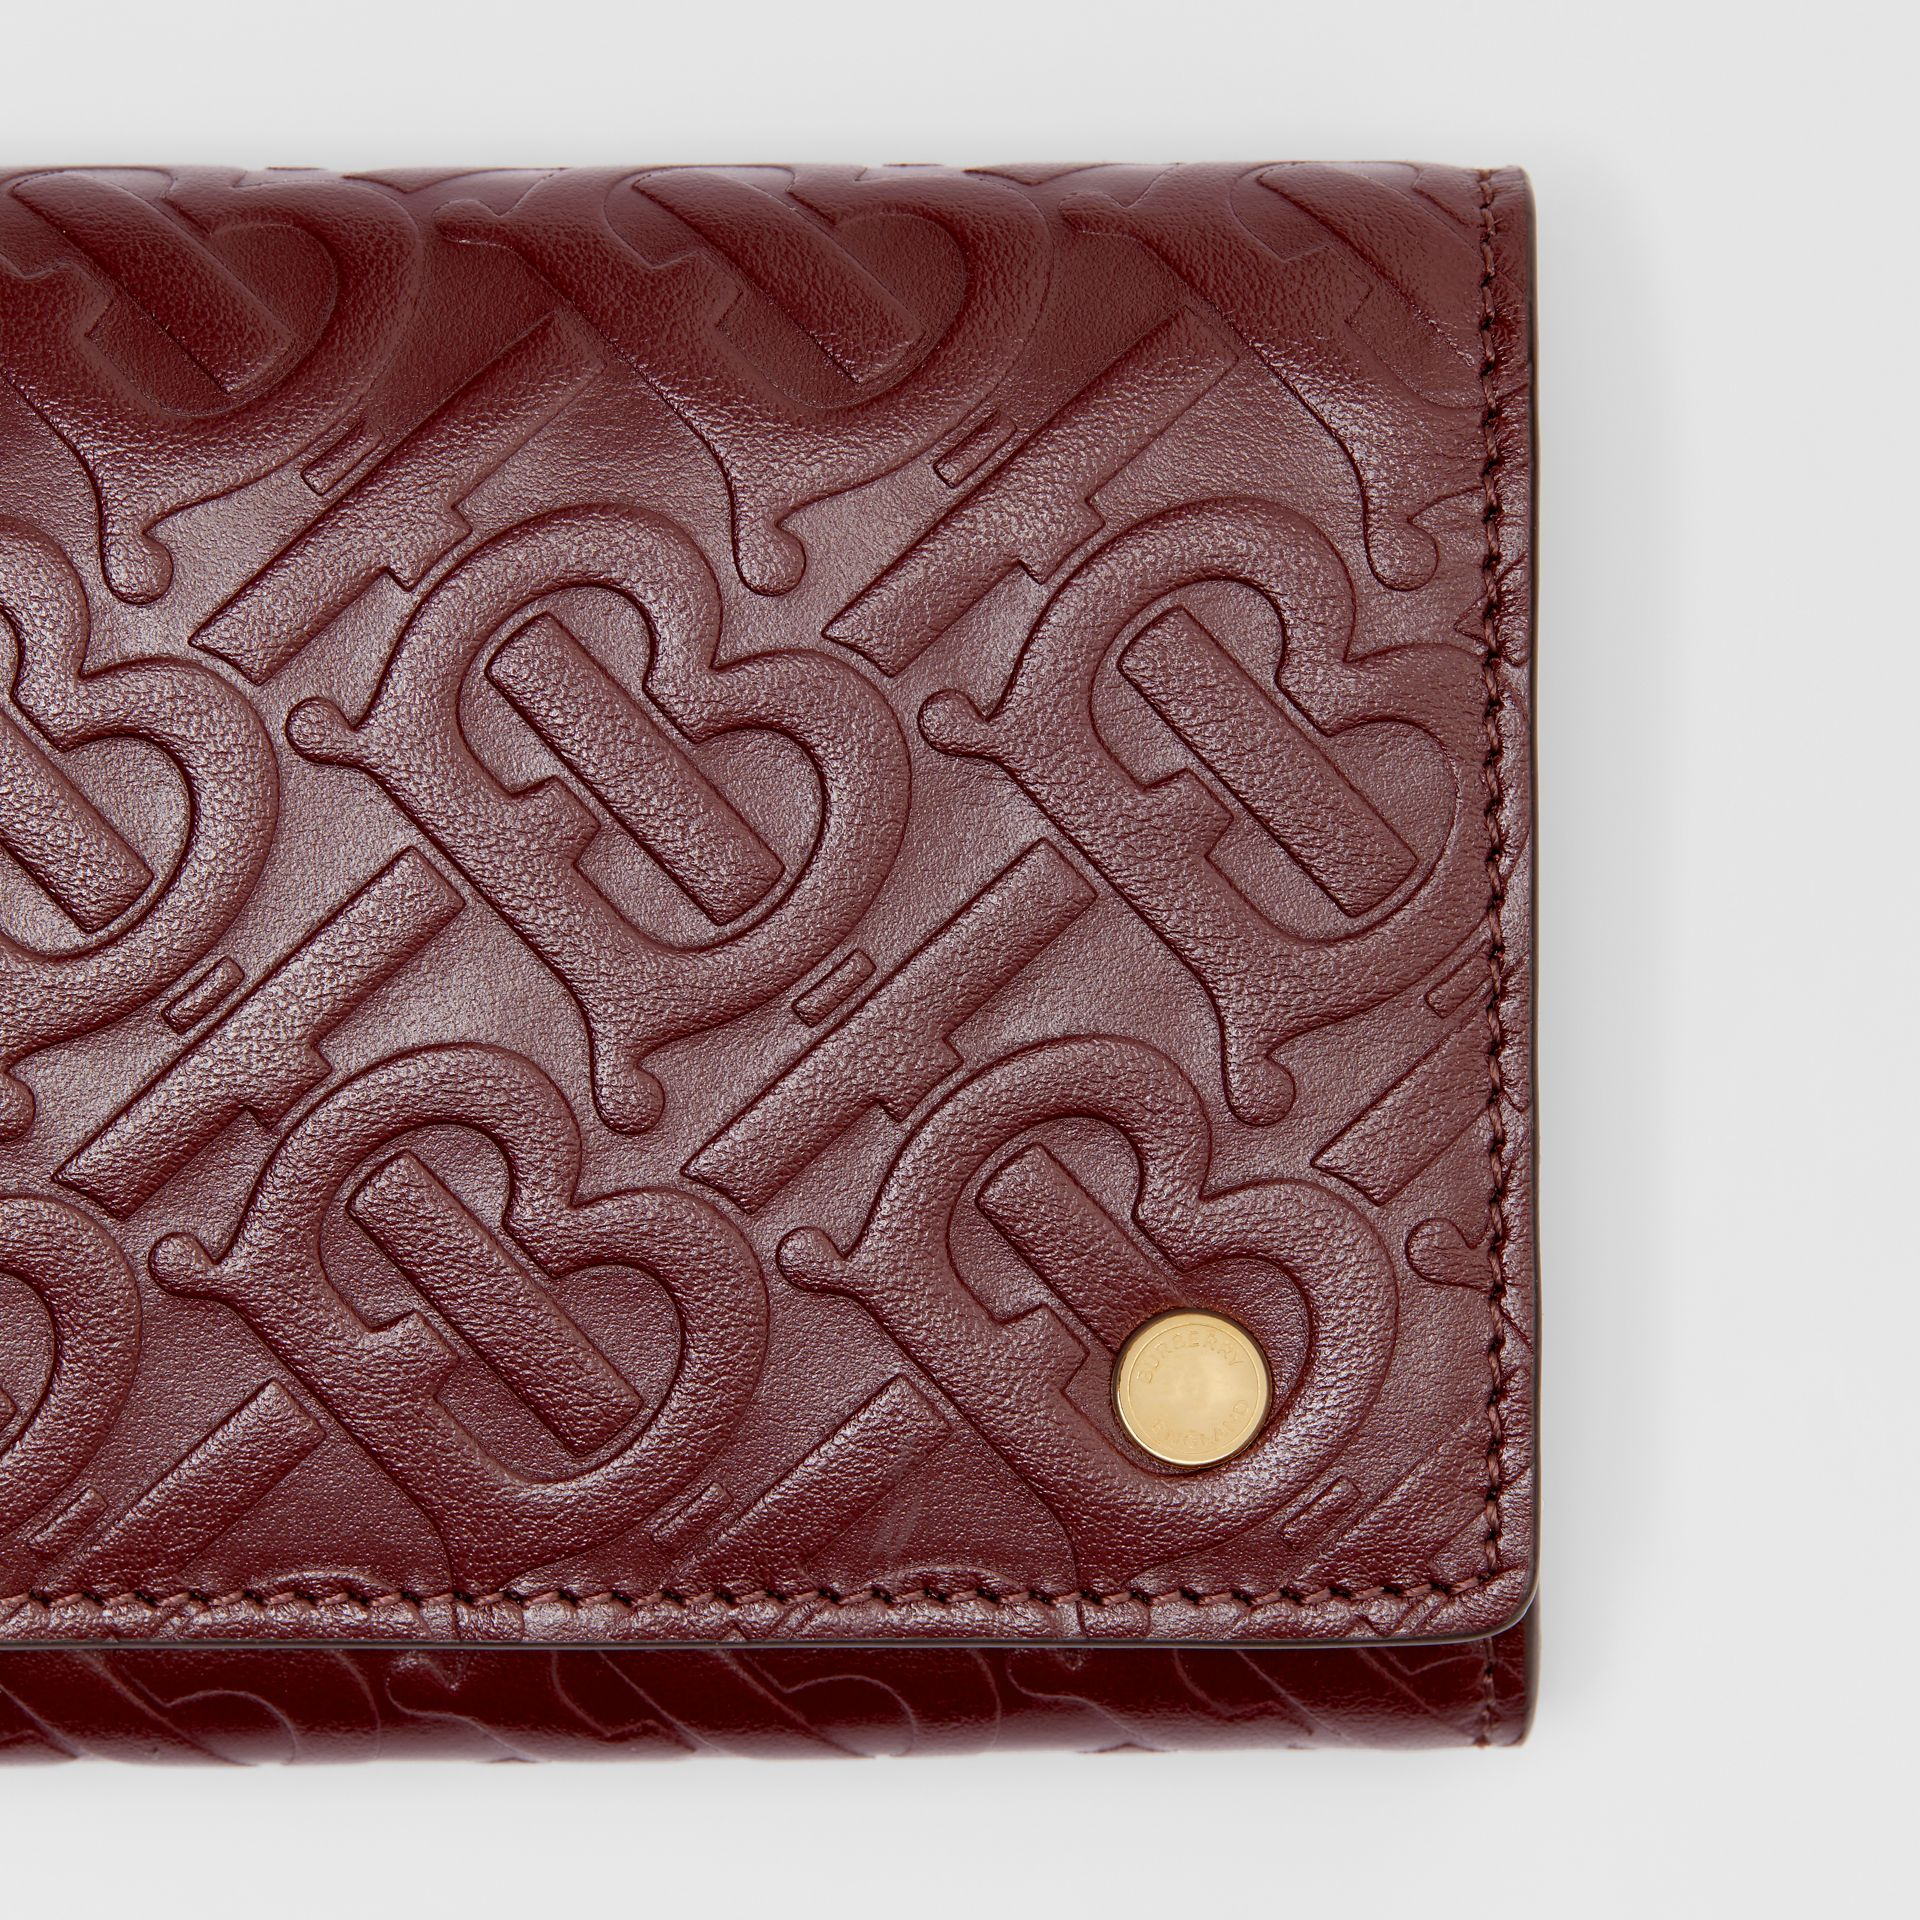 Monogram Leather Continental Wallet in Oxblood - Women | Burberry - gallery image 1